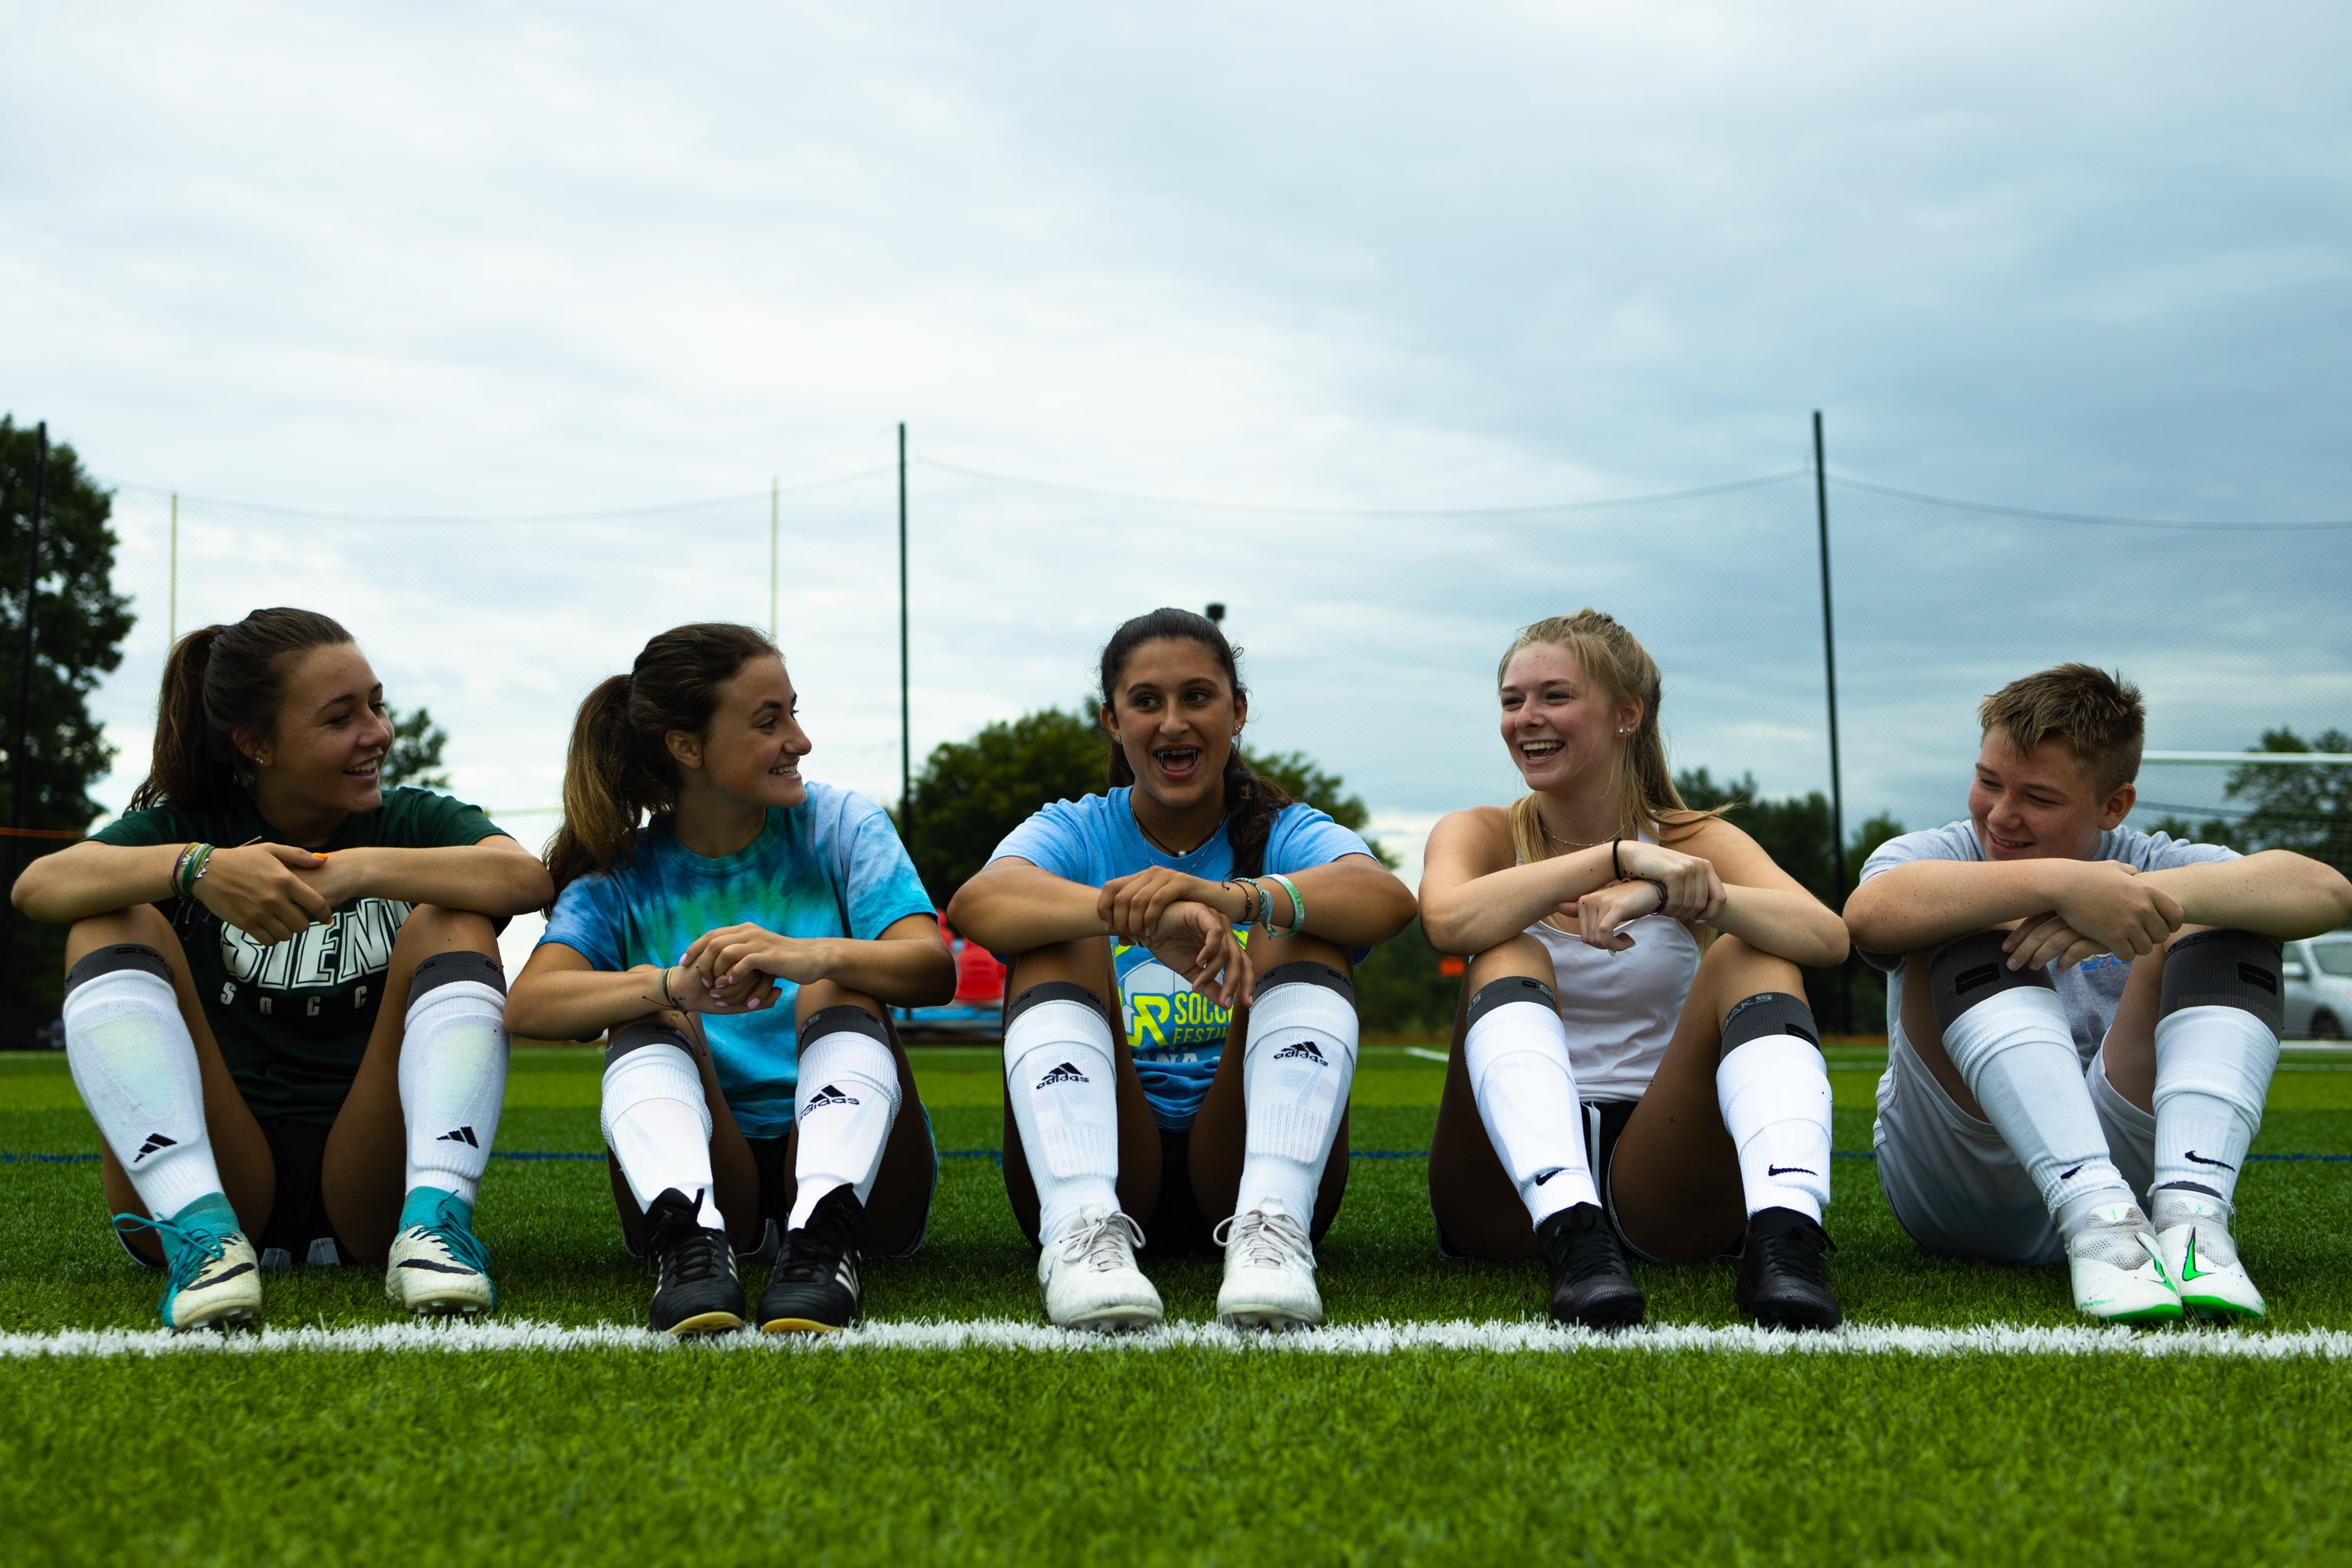 five soccer players wearing soaks under socks sitting on a soccer field